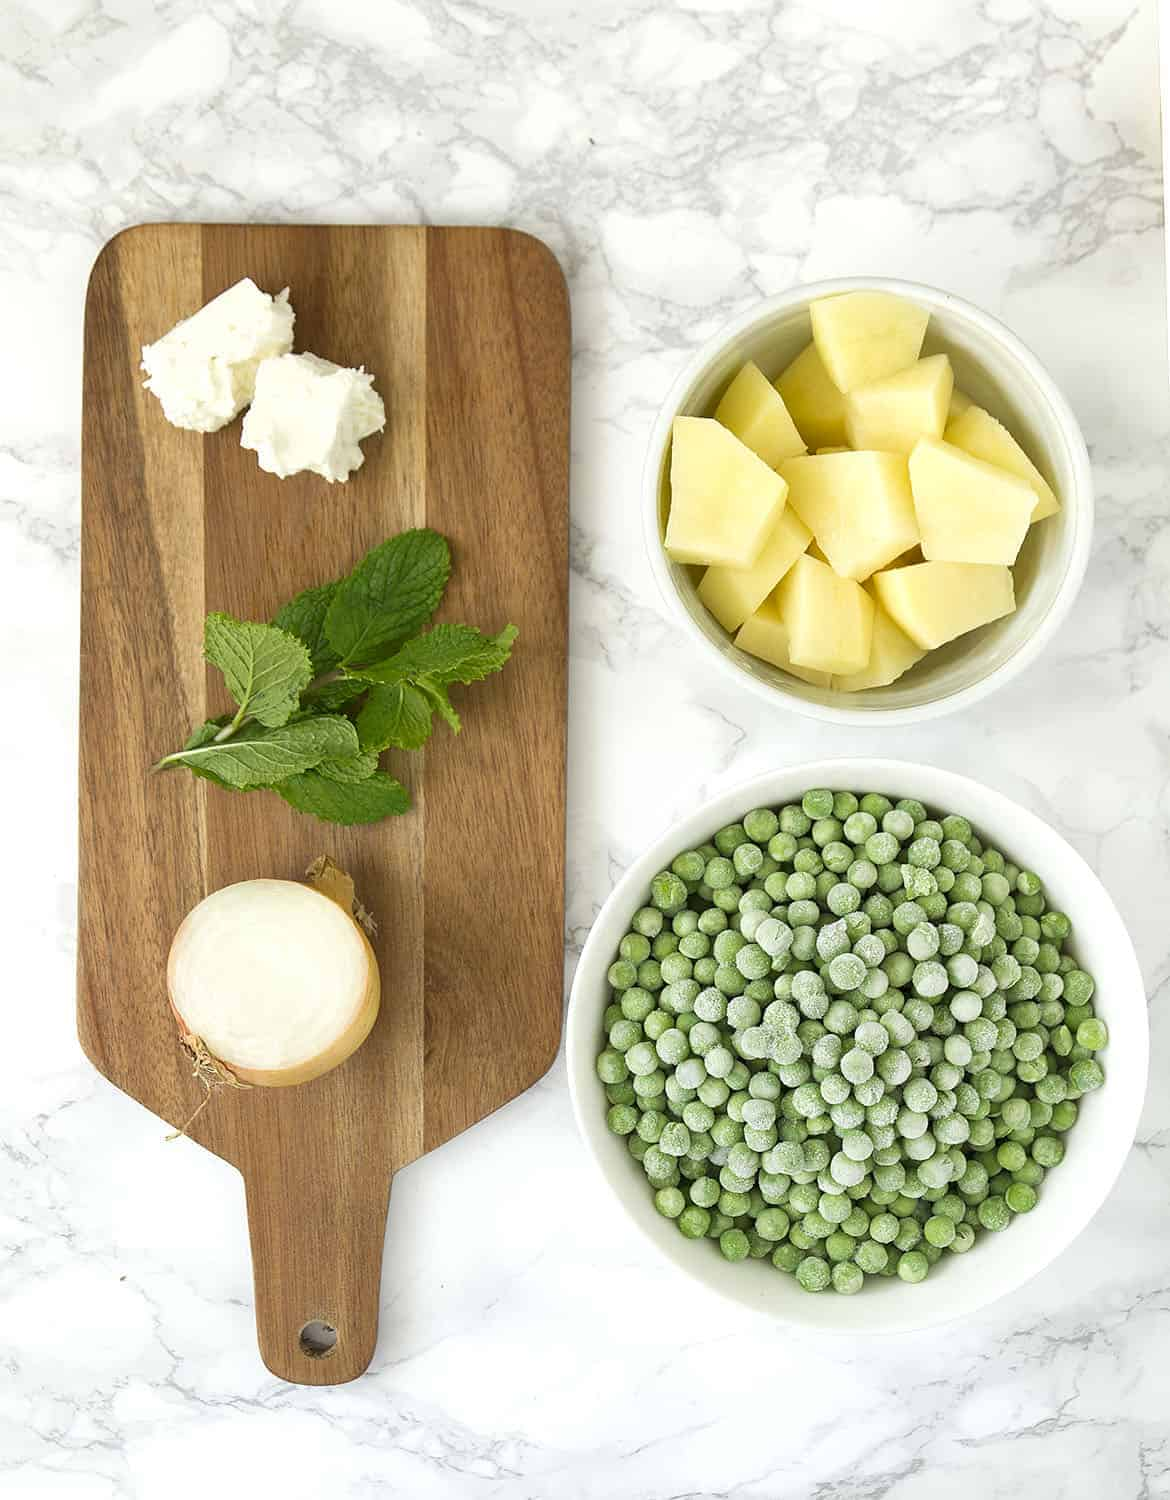 This detox, vibrant and easy pea and mint soup is creamy and delicious, packed with nutrients and ready in no time. It's a great and inexpensive last minute meal, comforting and healthy.